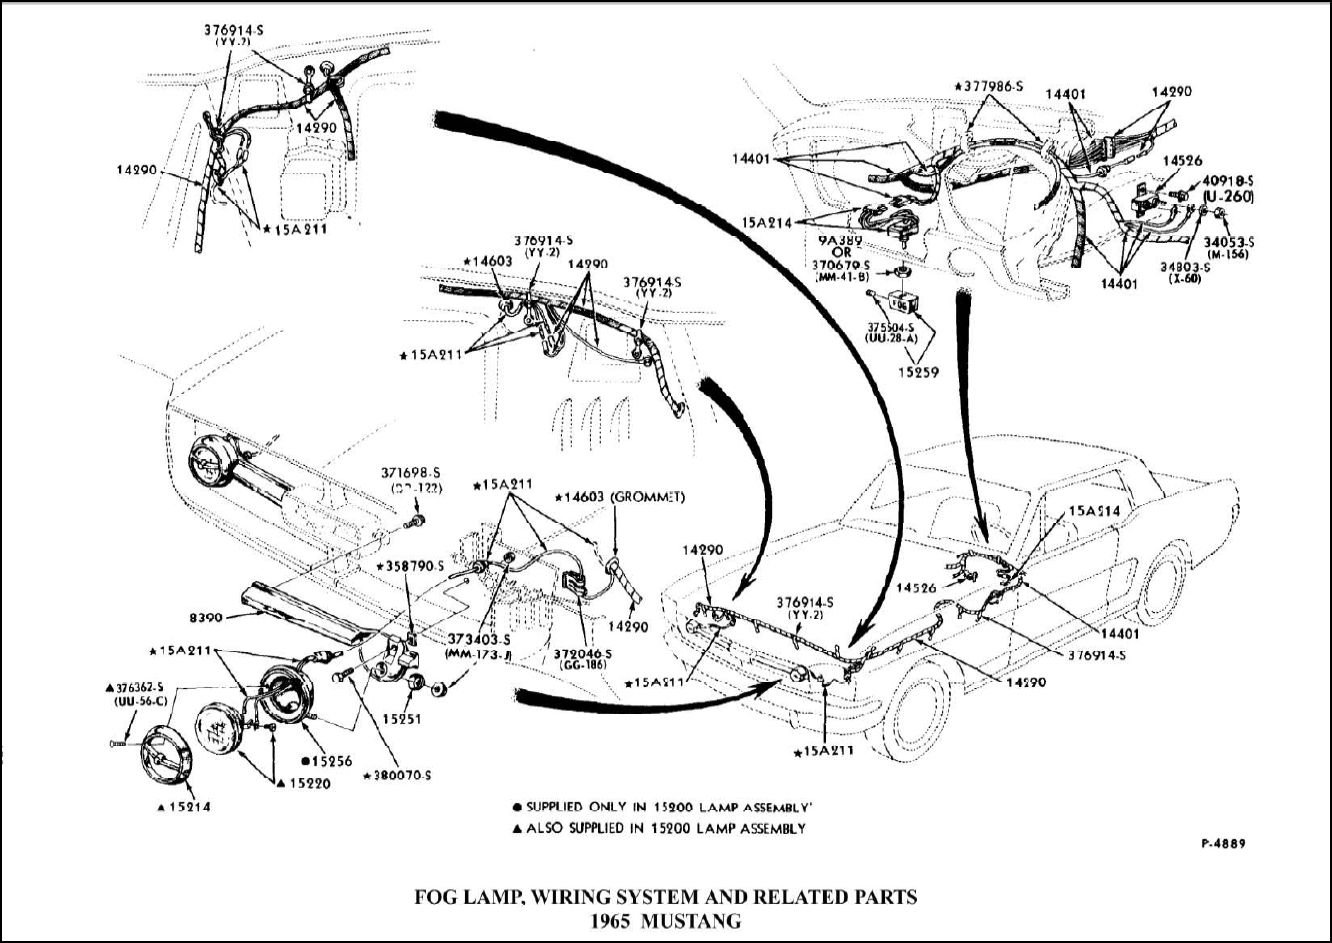 1966 Mustang Wiring Diagram Color | Wiring Diagram